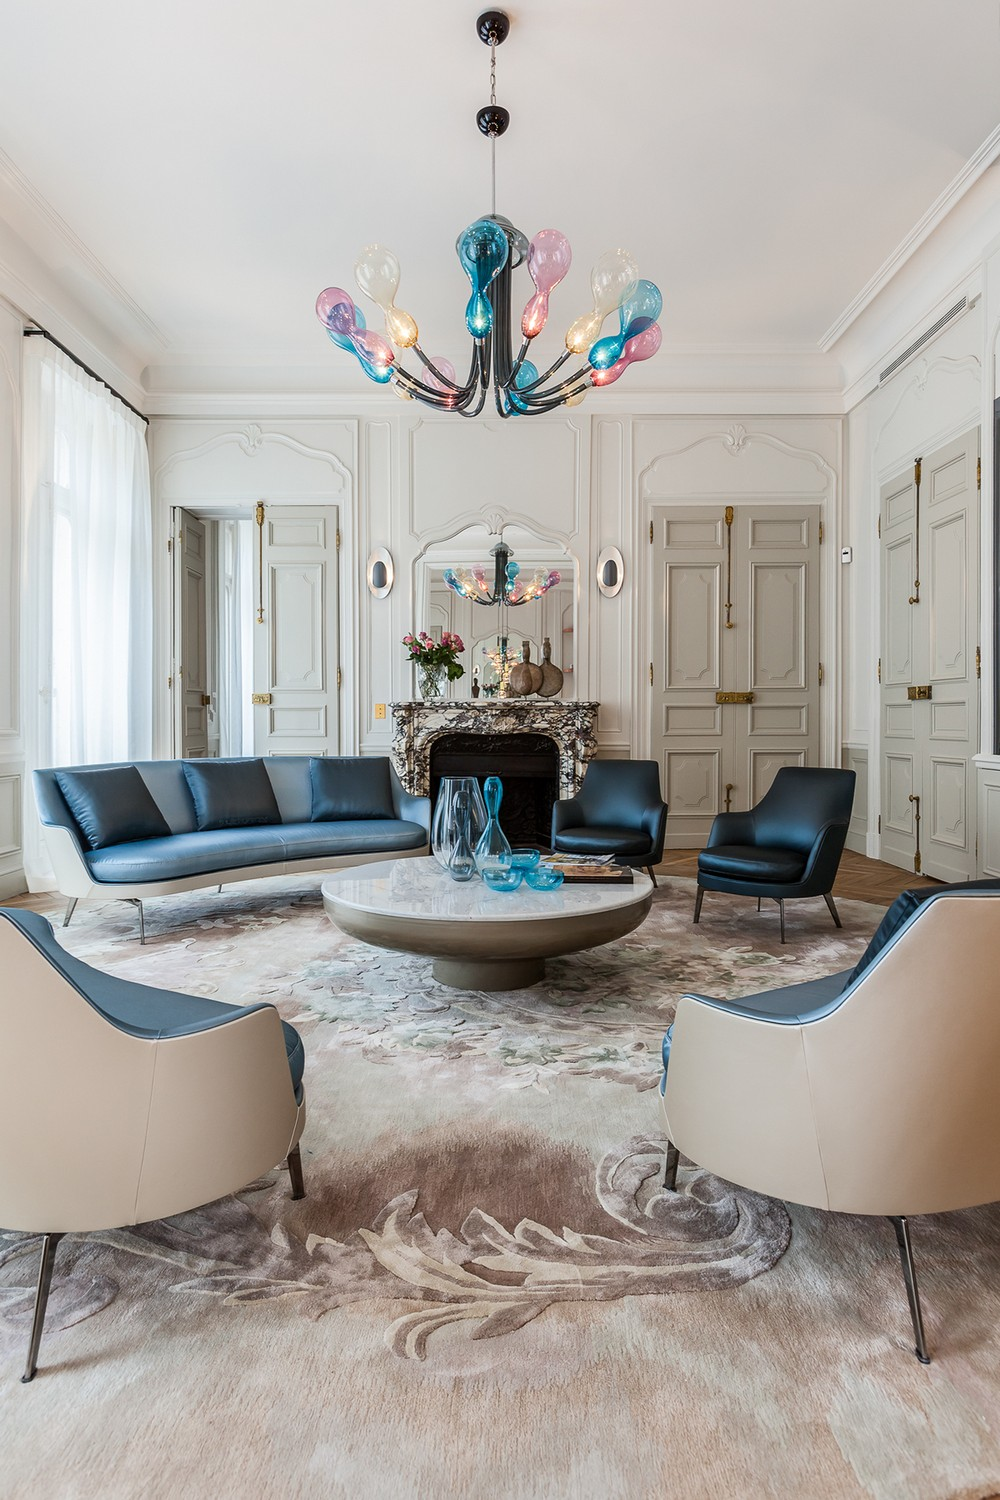 To Create An Original Work Of Art Faivre Imbues Himself With The Soul Each Property For Him Site Is Both A Blank Canvas And Source